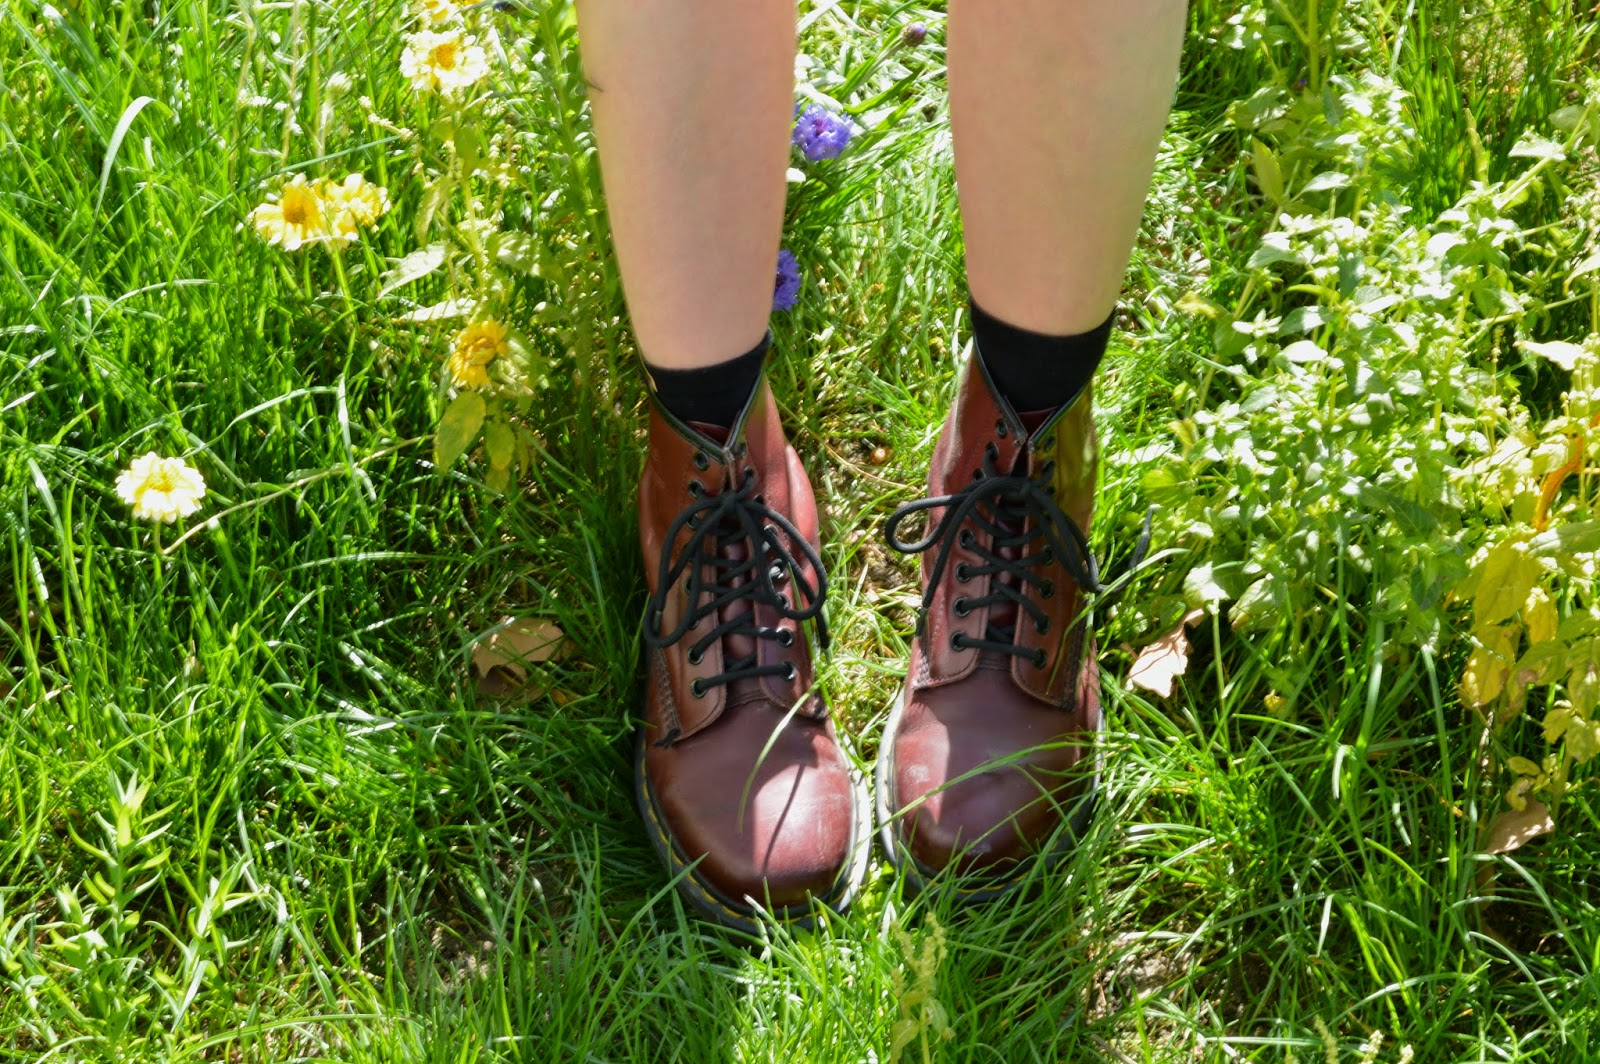 Grunge Dr Martens amongst grass and flowers